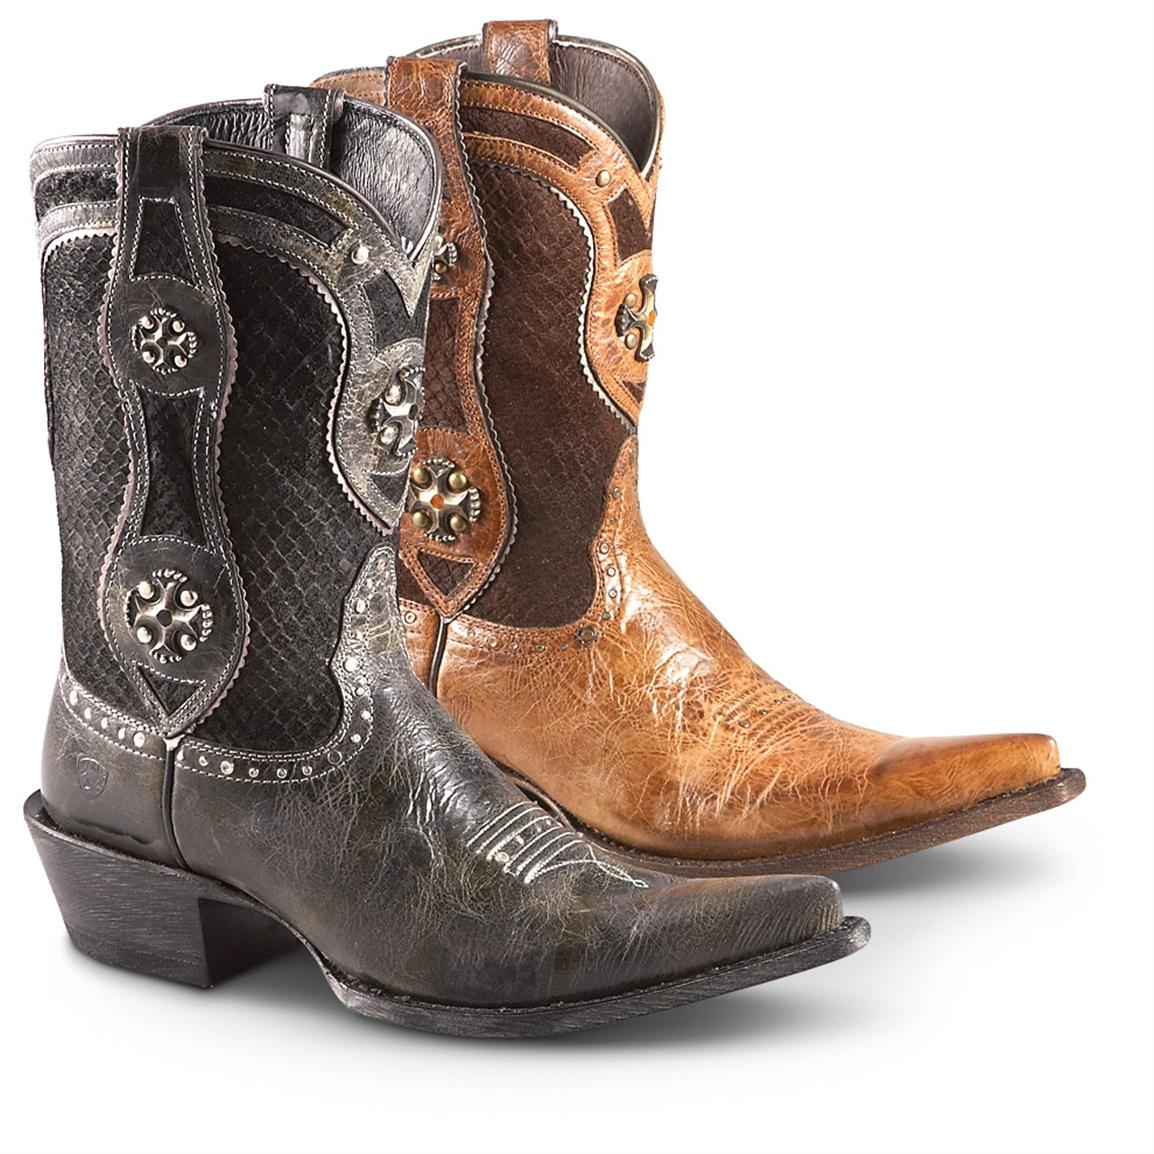 Ariat Cowboy Boots For Women H8GCOFID